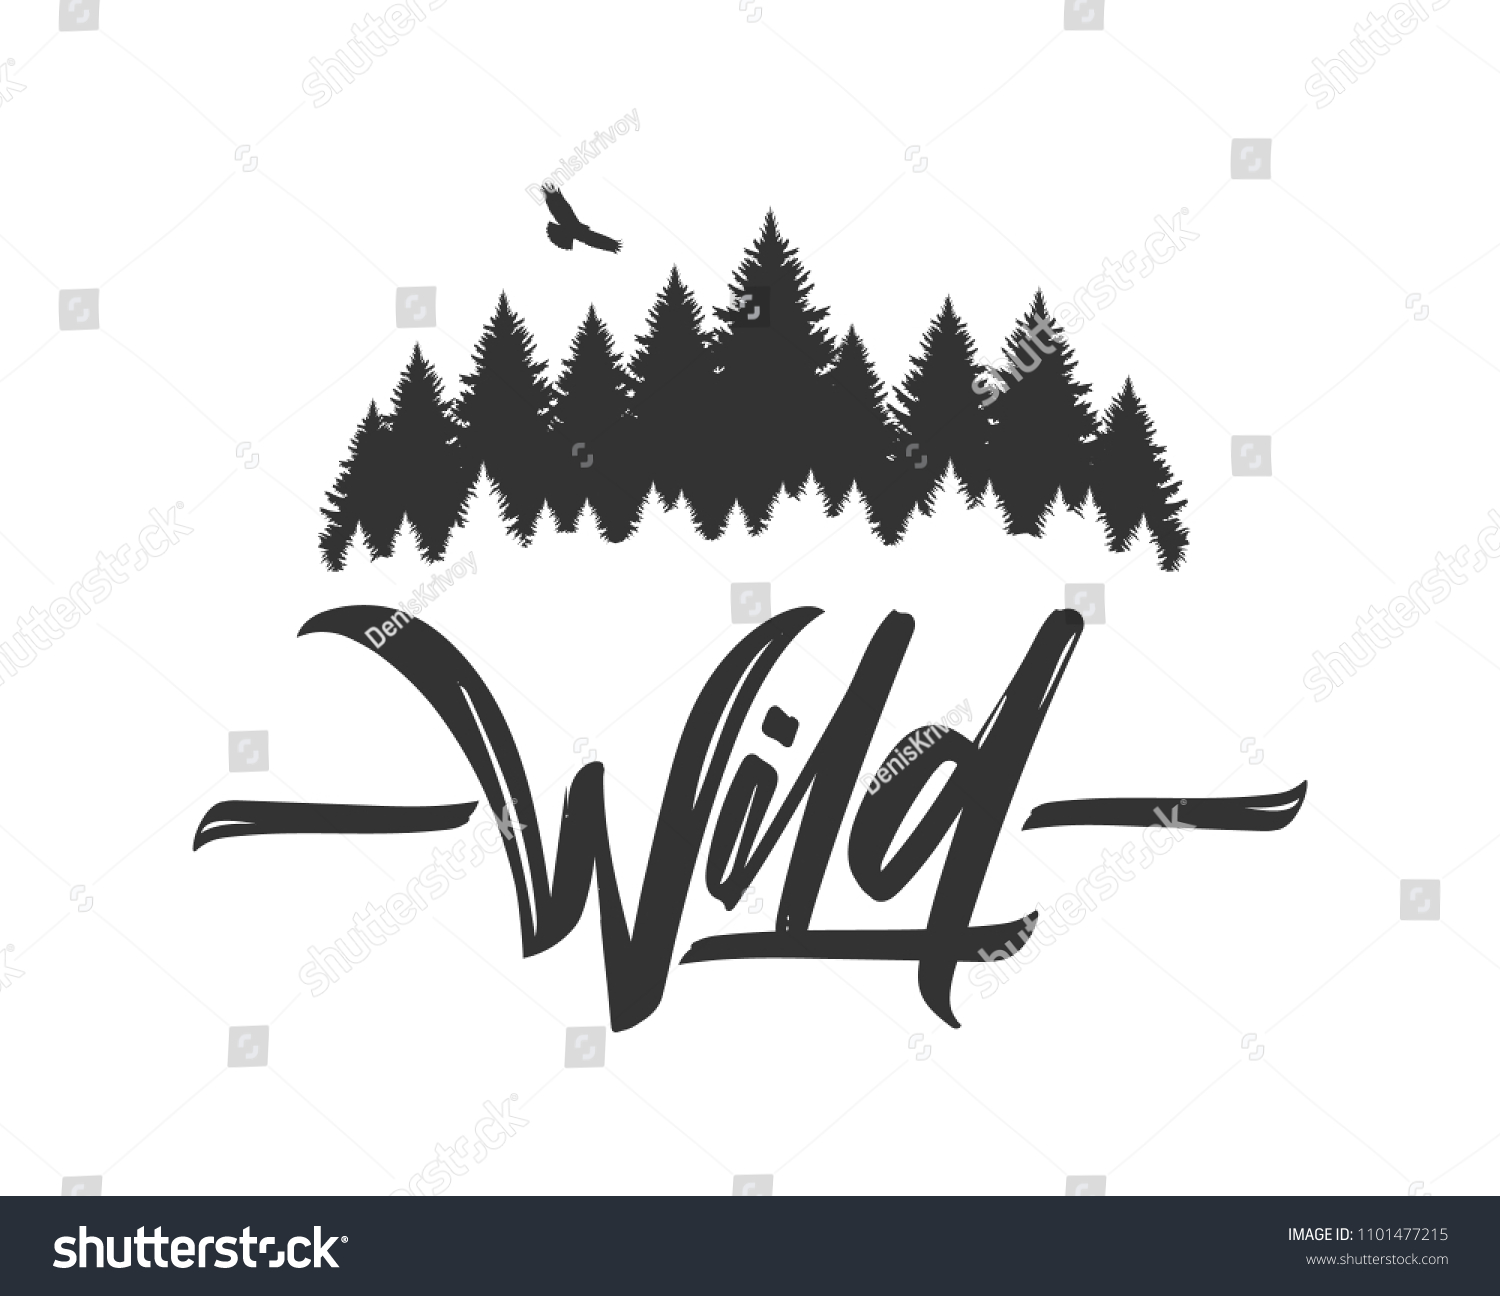 Vector illustration: Hand drawn type lettering of Wild with silhouette of Pine Forest and Hawk. Brush calligraphy. Typography design. #1101477215